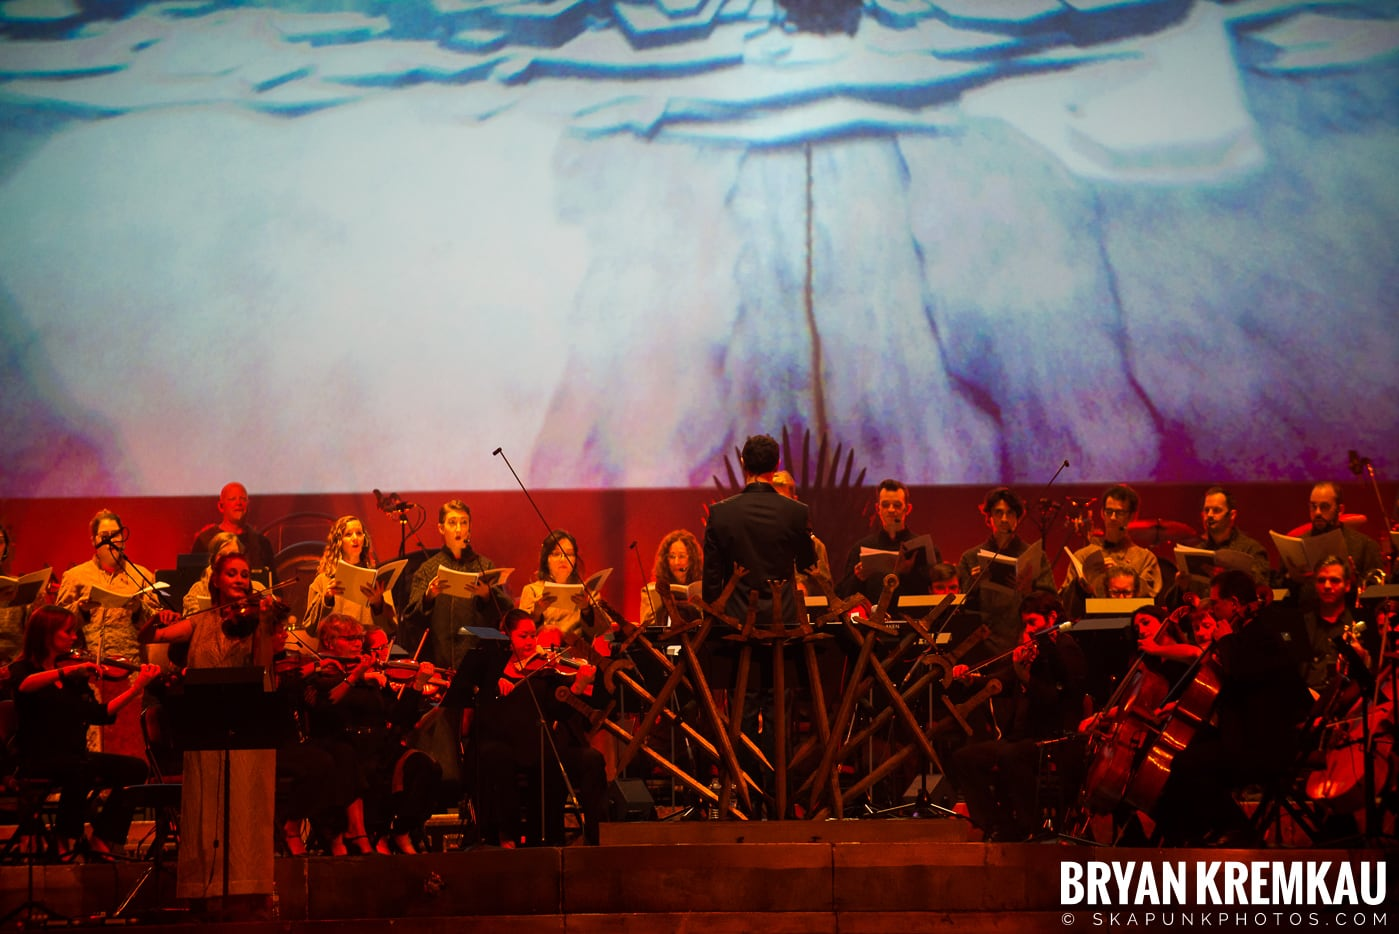 Game of Thrones Live Experience @ Prudential Center, Newark, NJ - 9.26.18 (37)